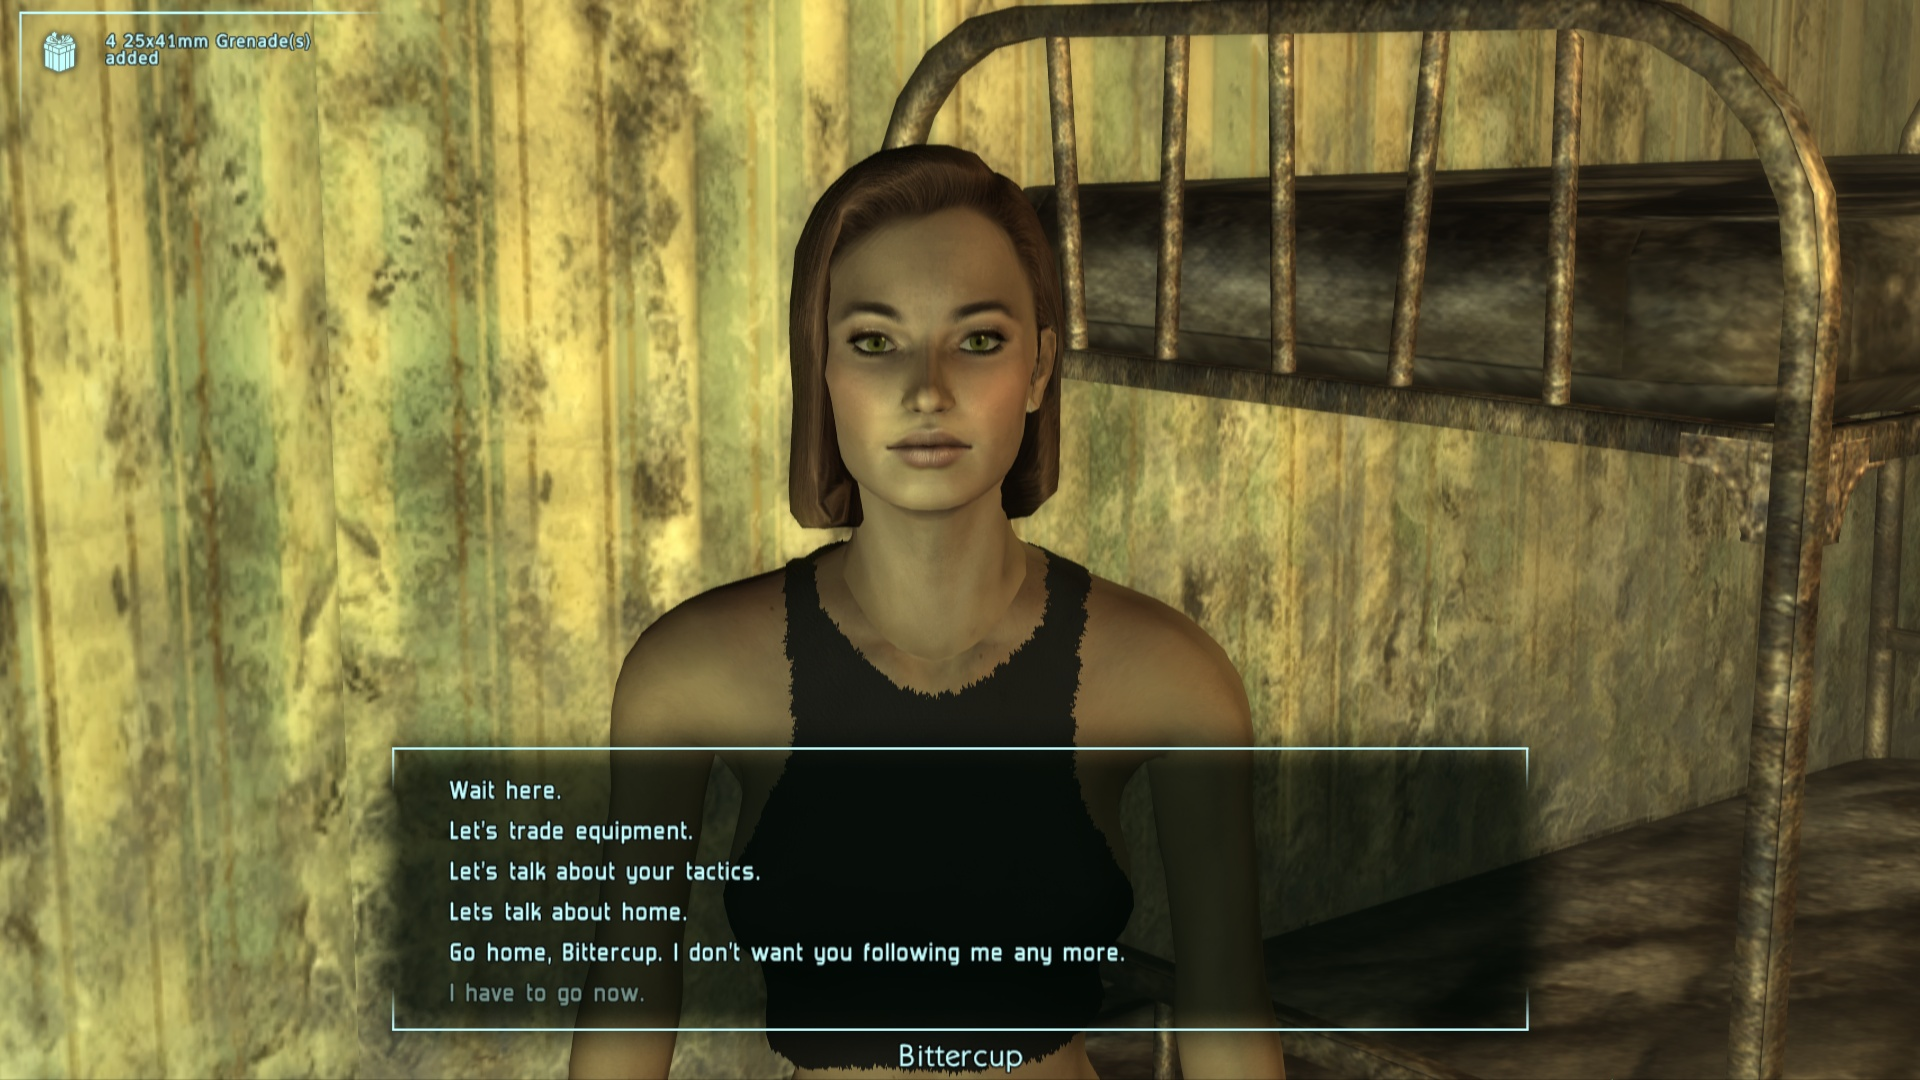 Bittercup fallout 3 hentai erotic galleries